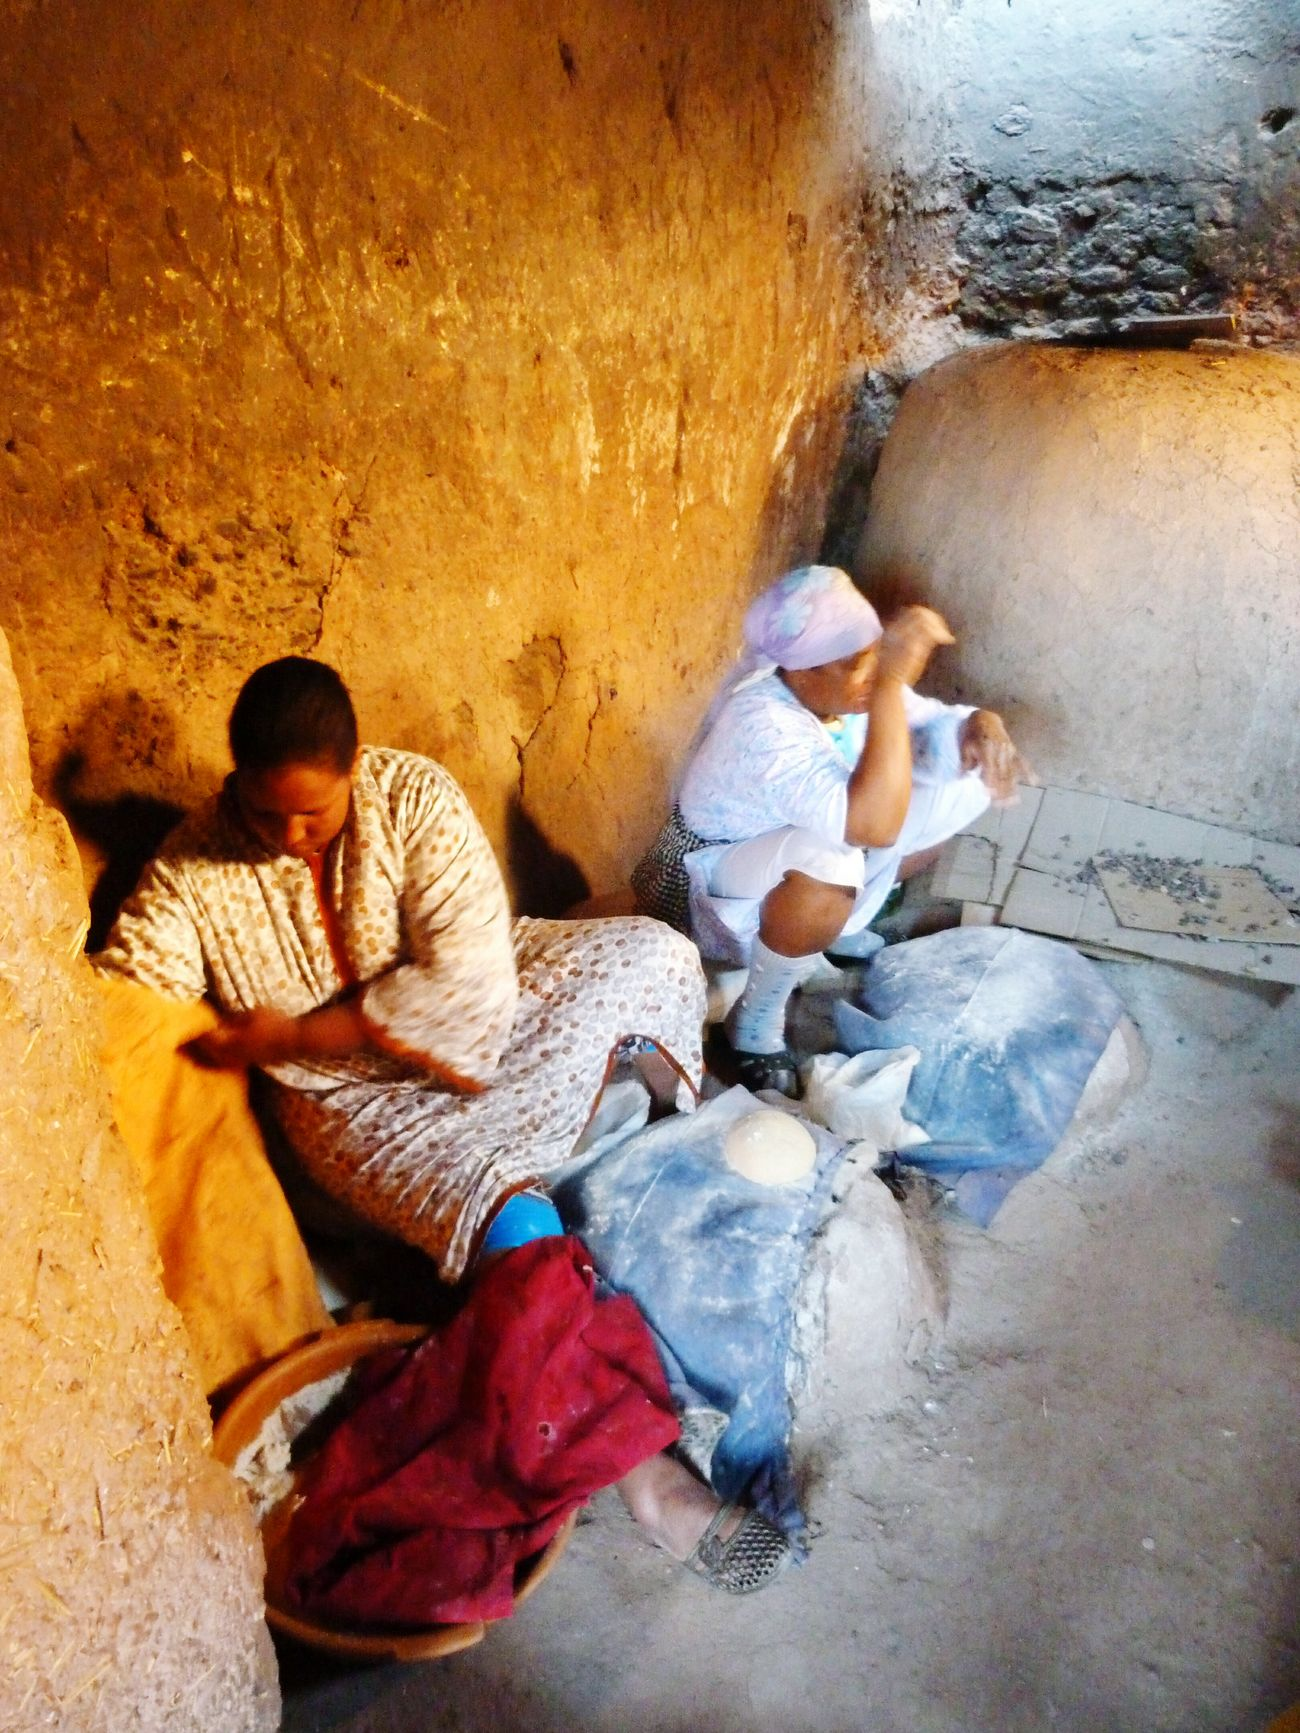 Morocco my love Full Length Lifestyles Two People Real People Childhood Togetherness Outdoors People Adults Only Adult Young Adult Day Nikonphotographers Scenics Hollydays MoroccoTrip Cloud - Sky Trip Photo Morocco 青の街シャウエン Capture The Moment Travel Destinations Nature Calme..¤¤ Moroccan Artisanal Moroccan Culture